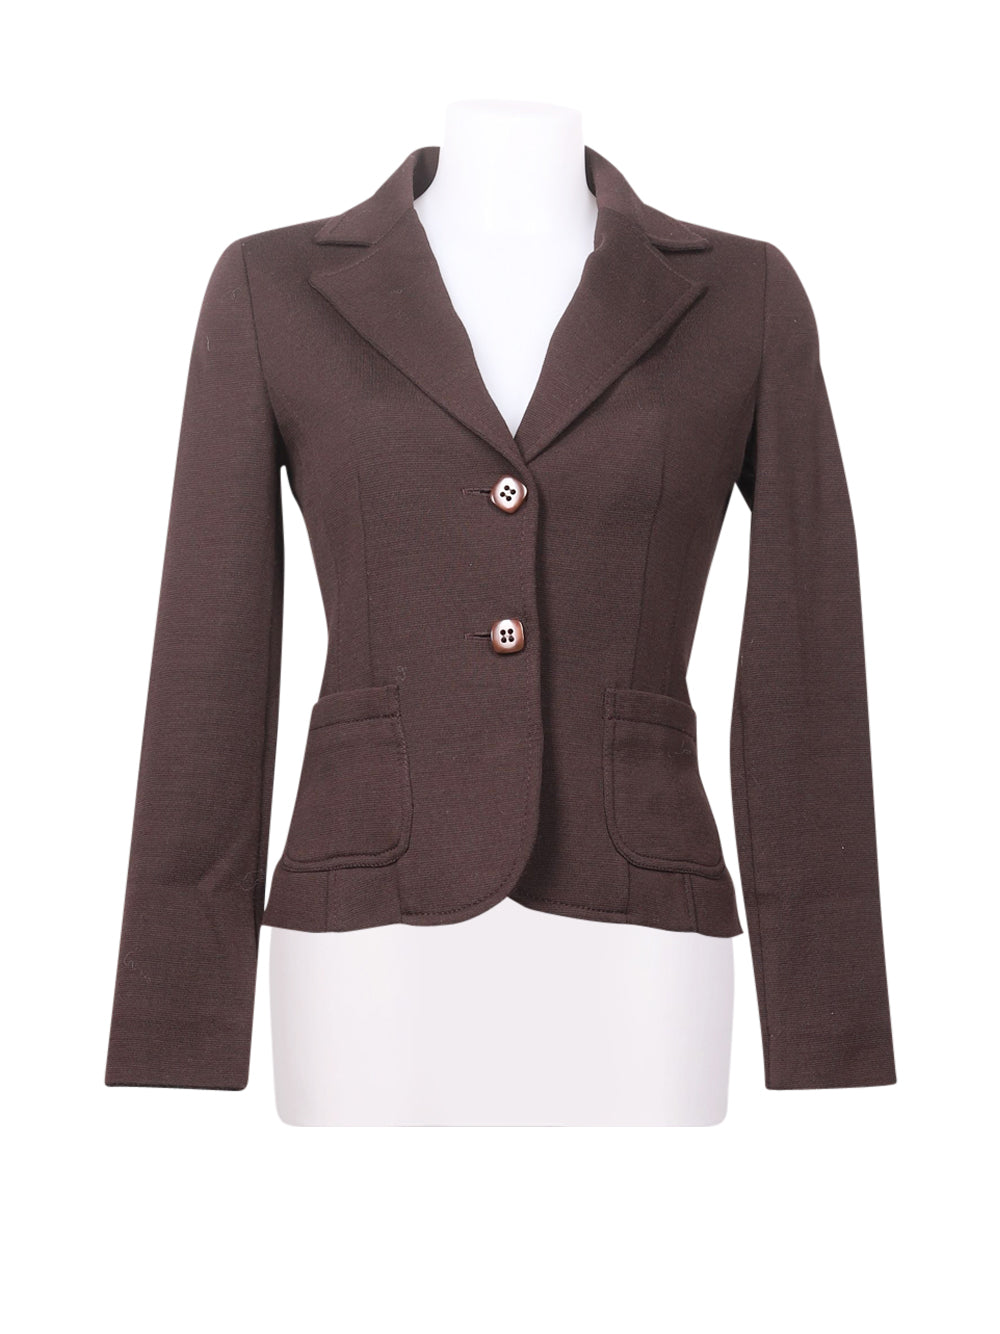 Front photo of Preloved I blues Brown Woman's blazer - size 10/M